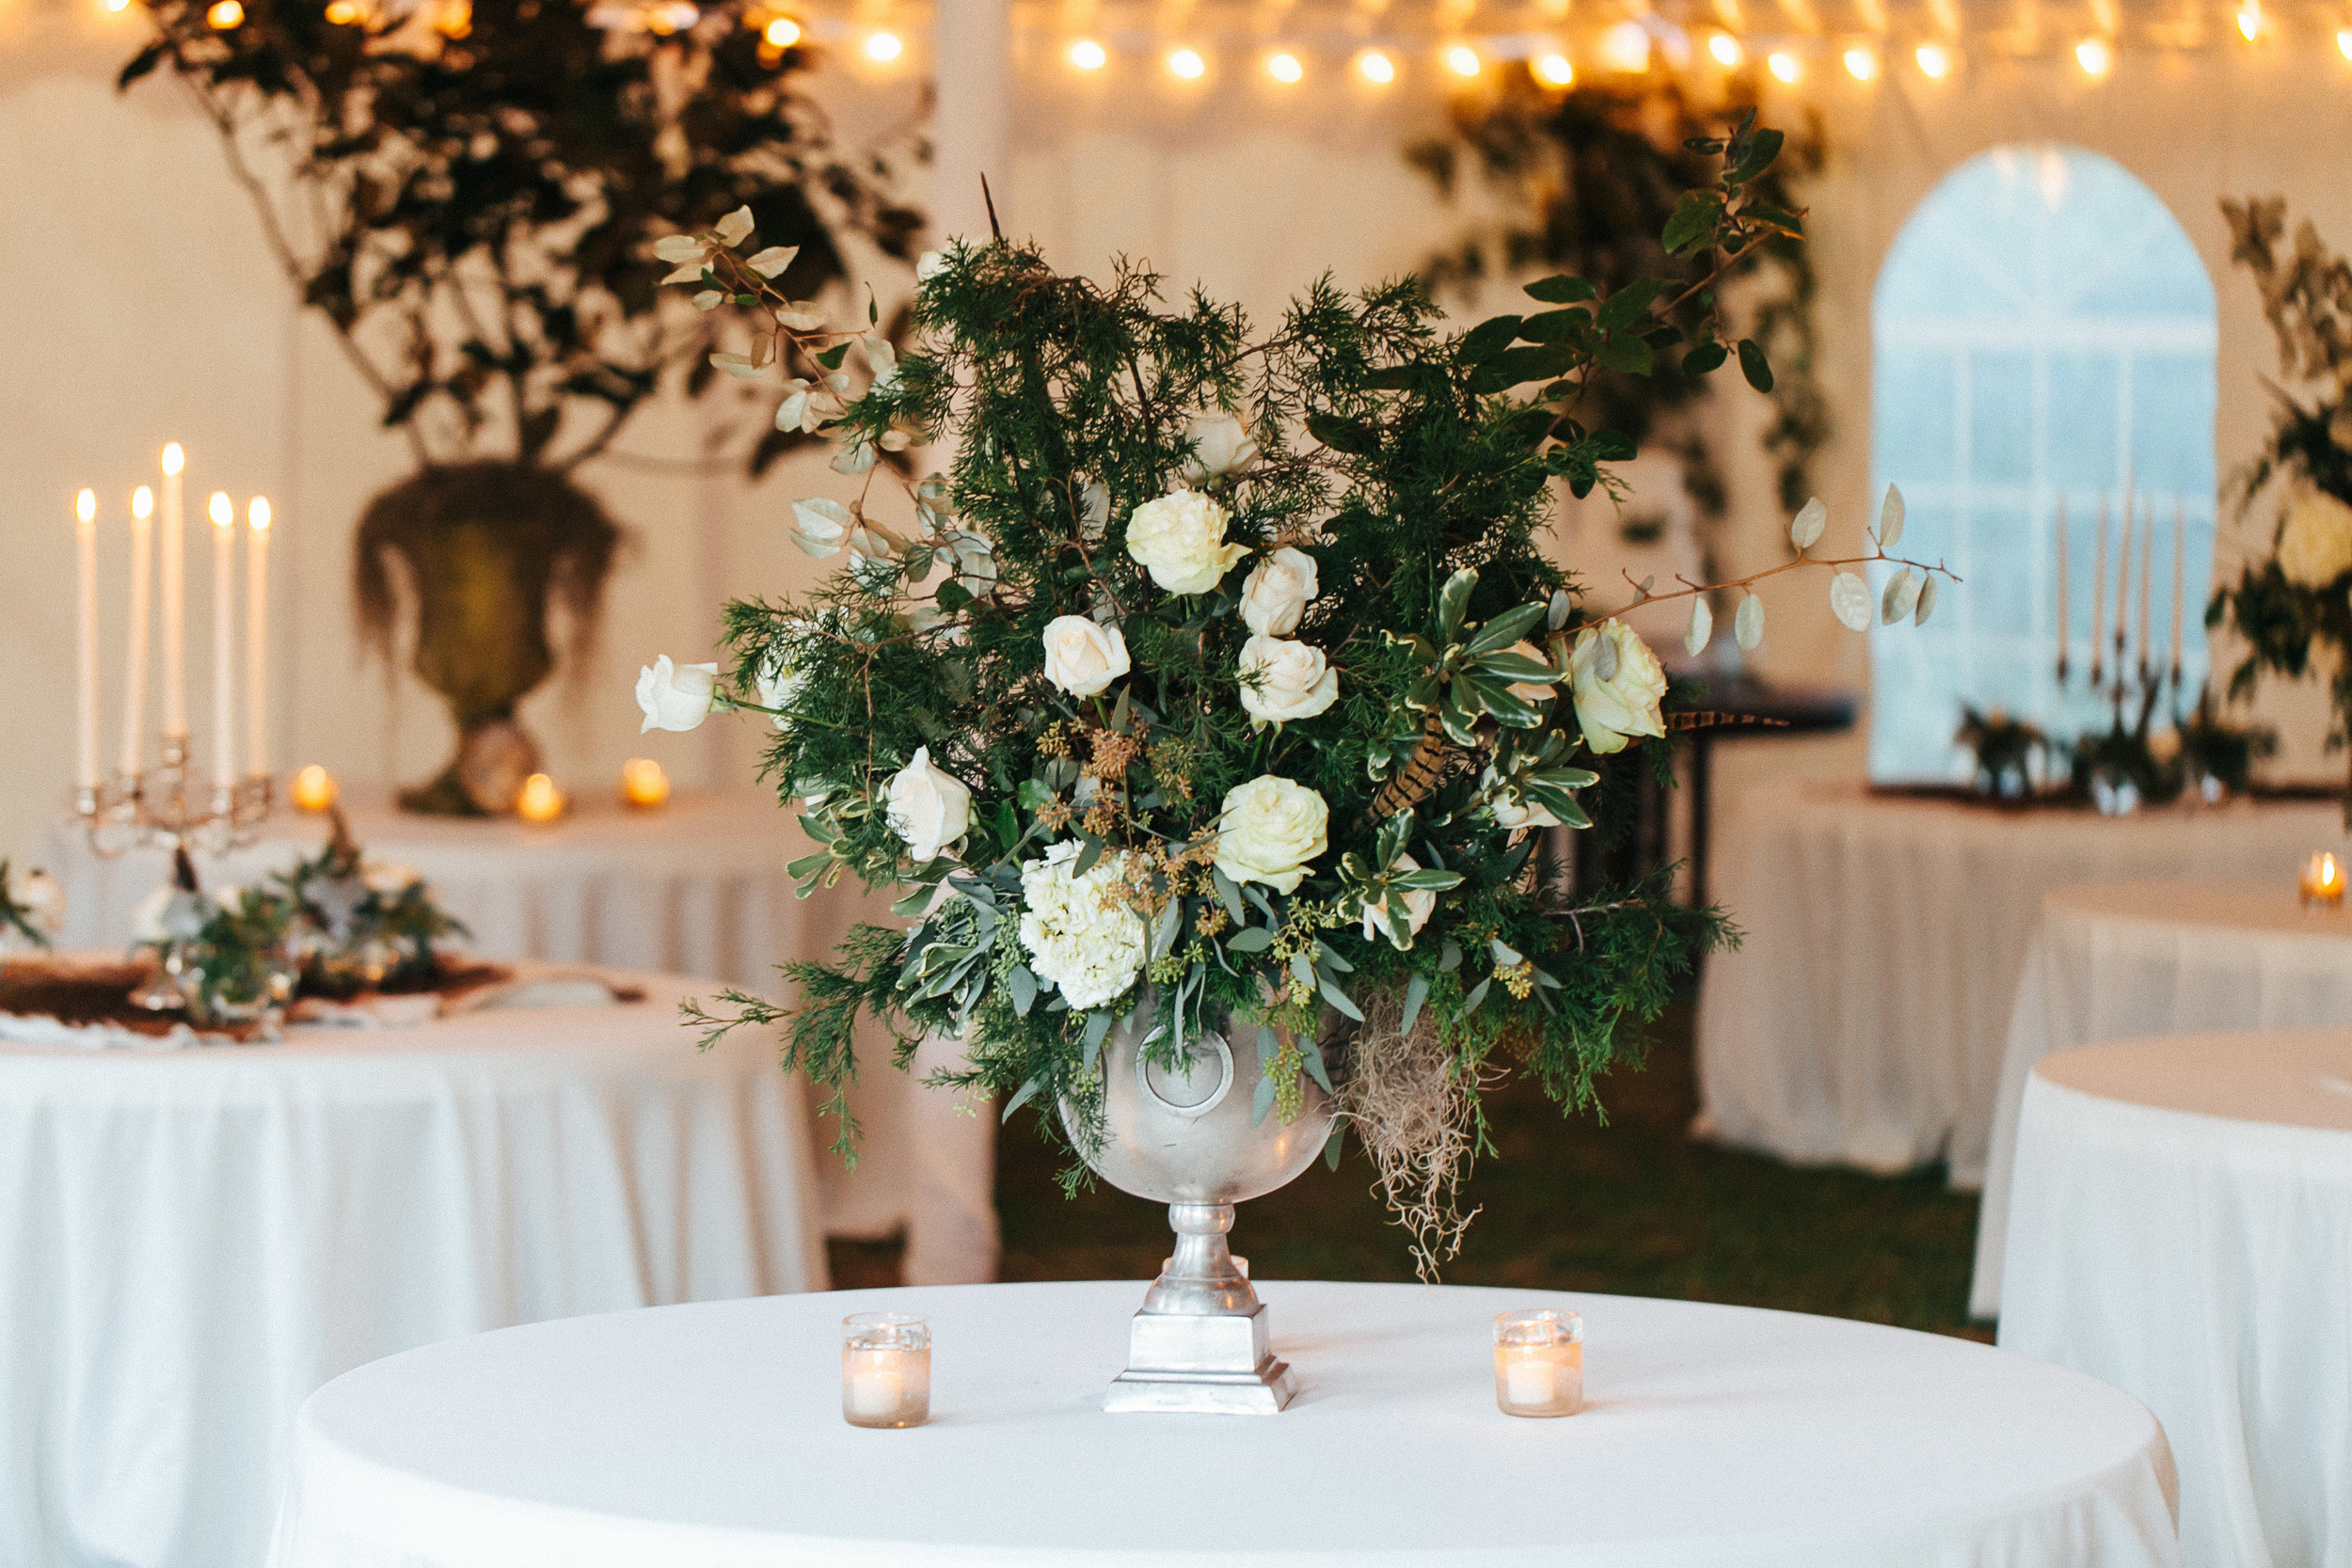 Lush centerpieces of white roses, hydrangeas, spanish moss and pheasant feathers